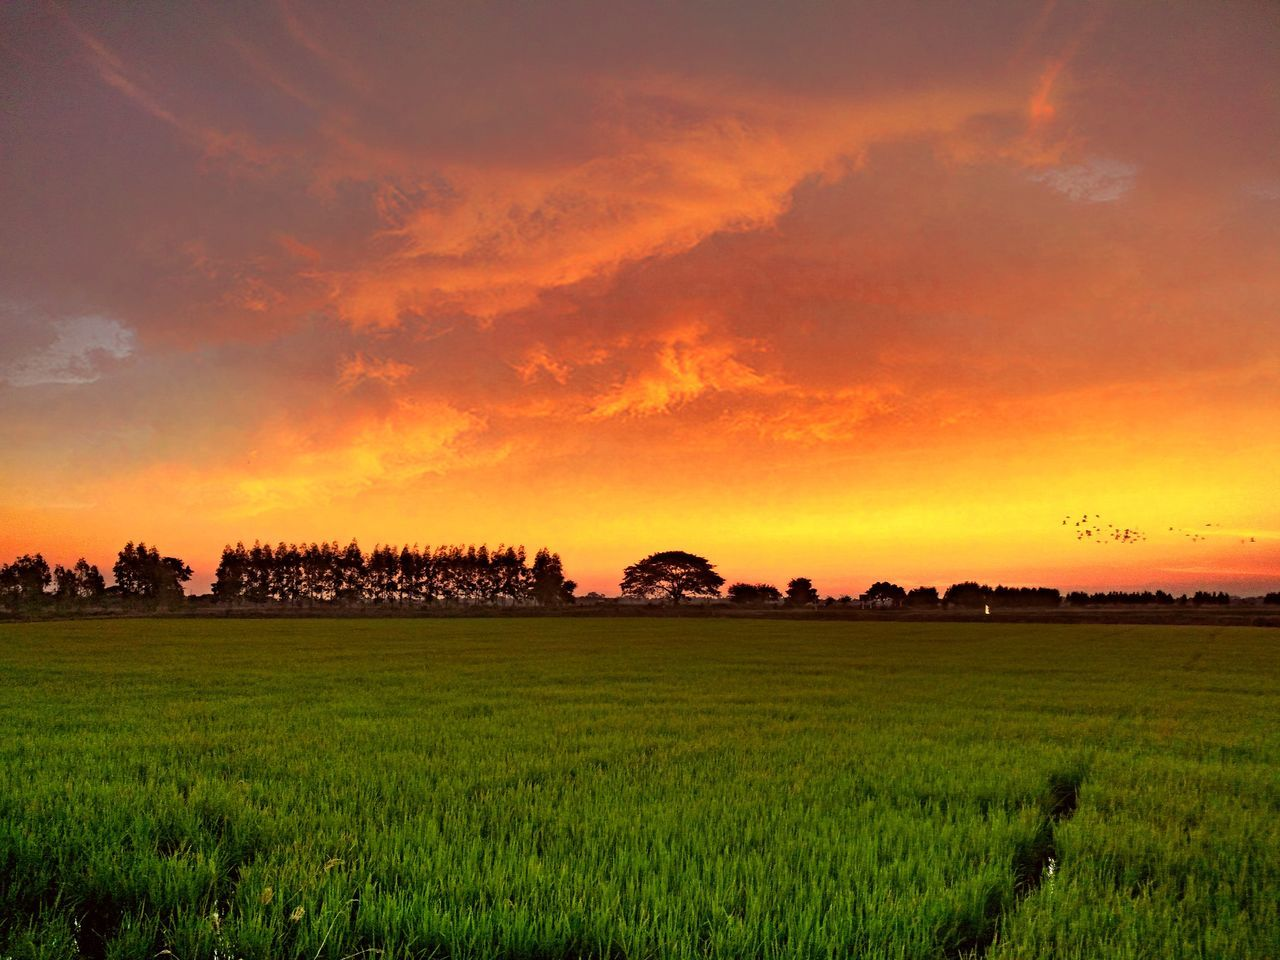 field, landscape, sunset, agriculture, nature, beauty in nature, farm, scenics, growth, tranquility, tranquil scene, rural scene, sky, crop, no people, outdoors, tree, rice paddy, day